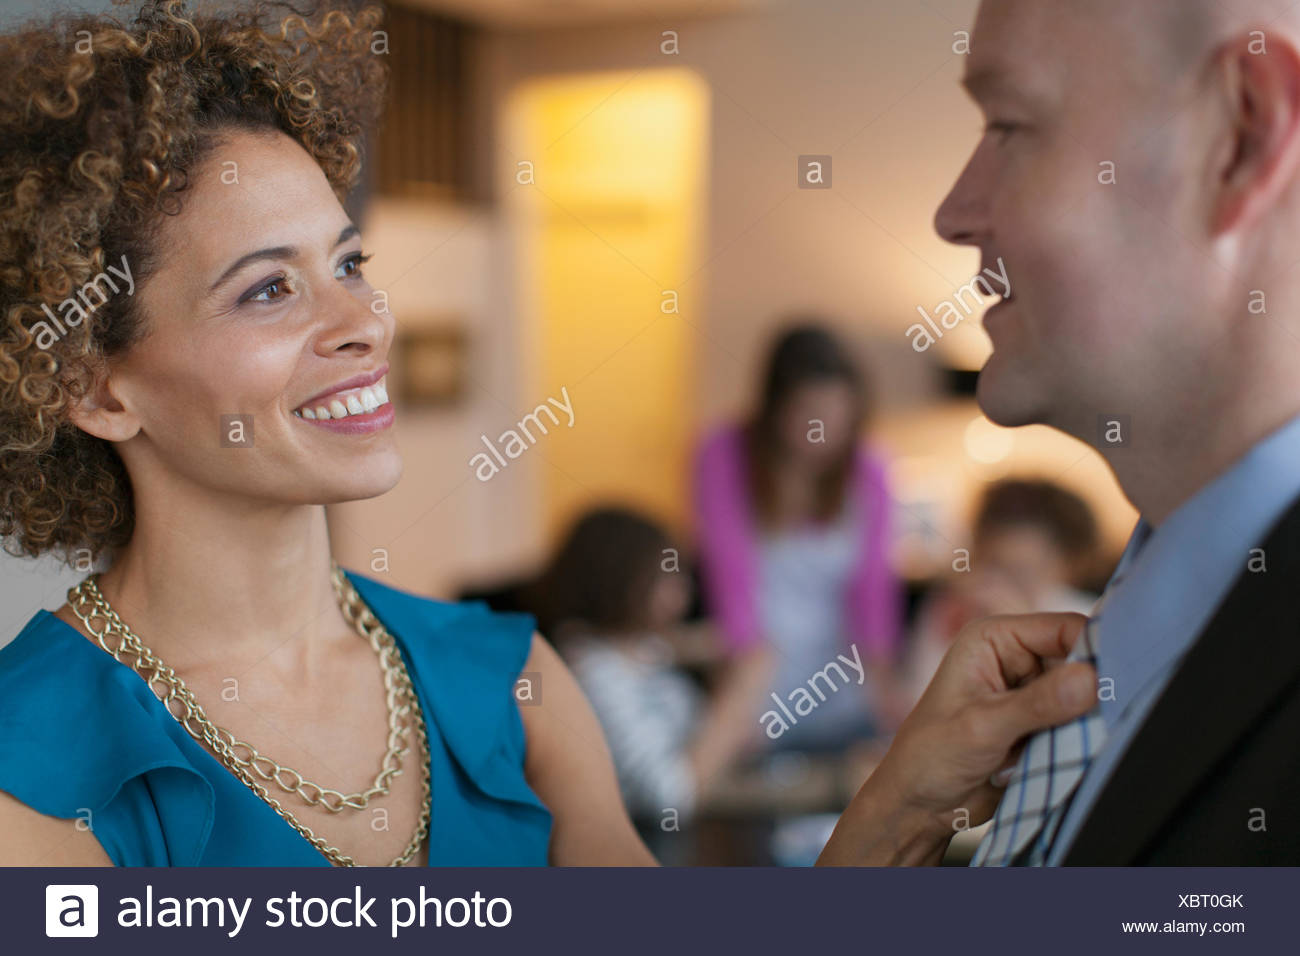 Wife adjusting husbands necktie before going out. - Stock Image